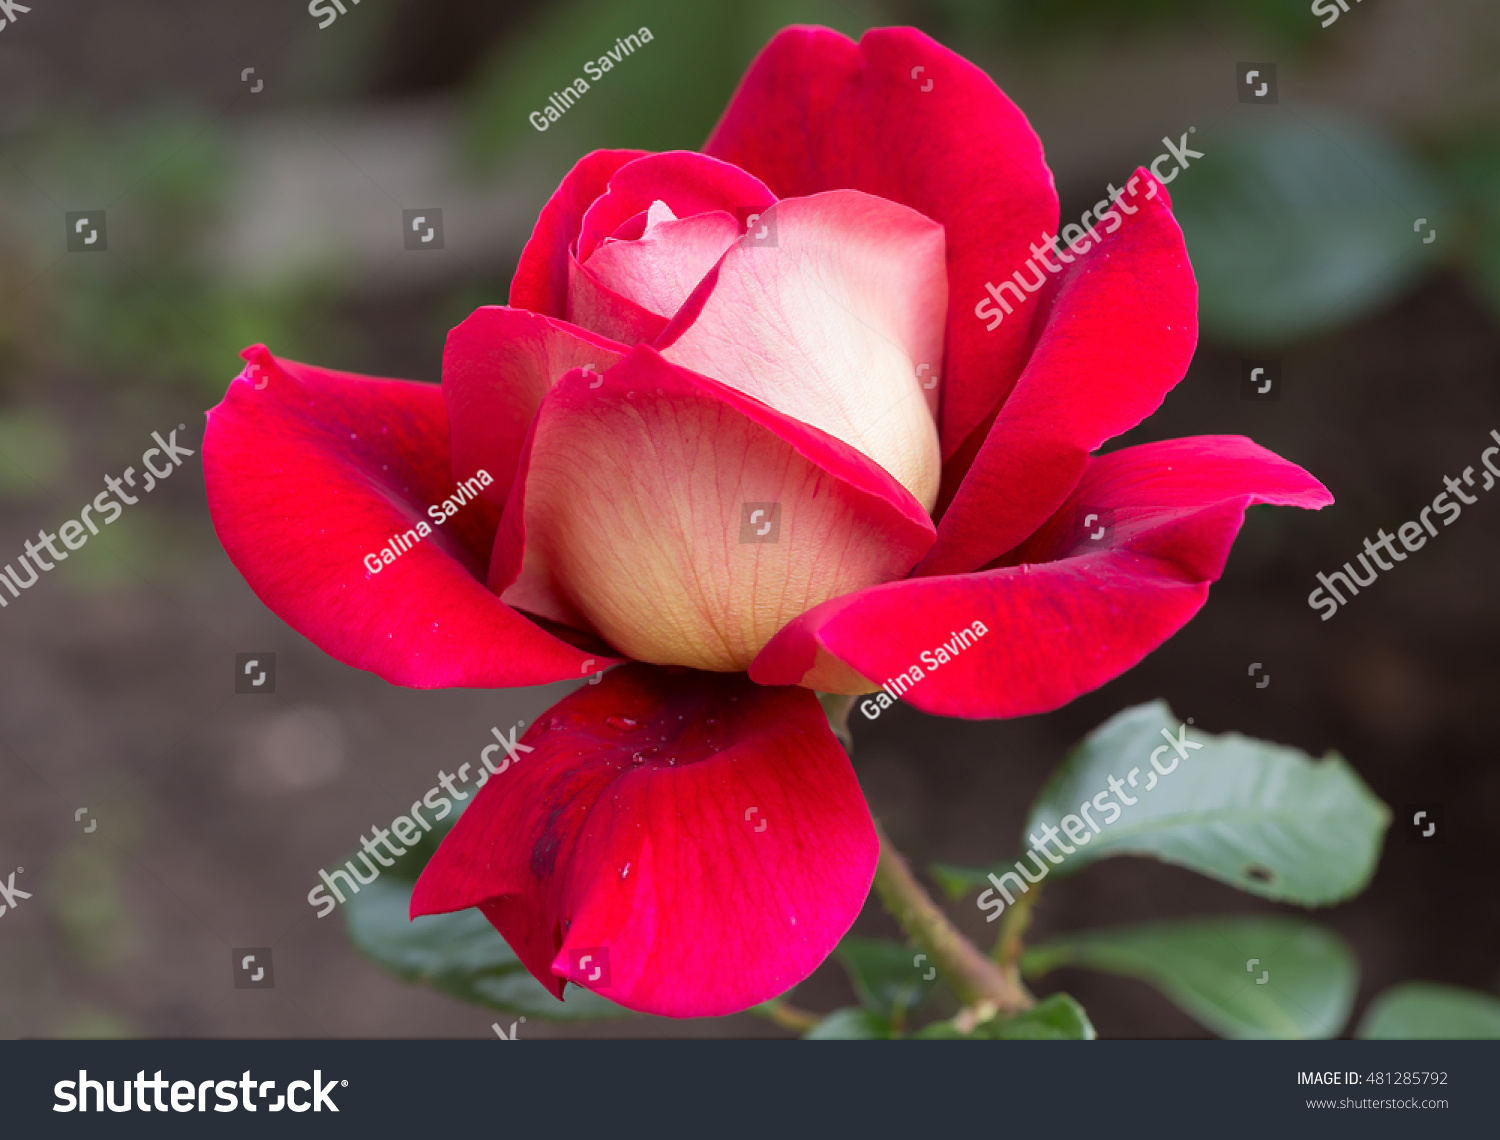 Flower red rose roses these beautiful stock photo edit now flower red rose roses these beautiful flowers since the strict victorian era izmirmasajfo